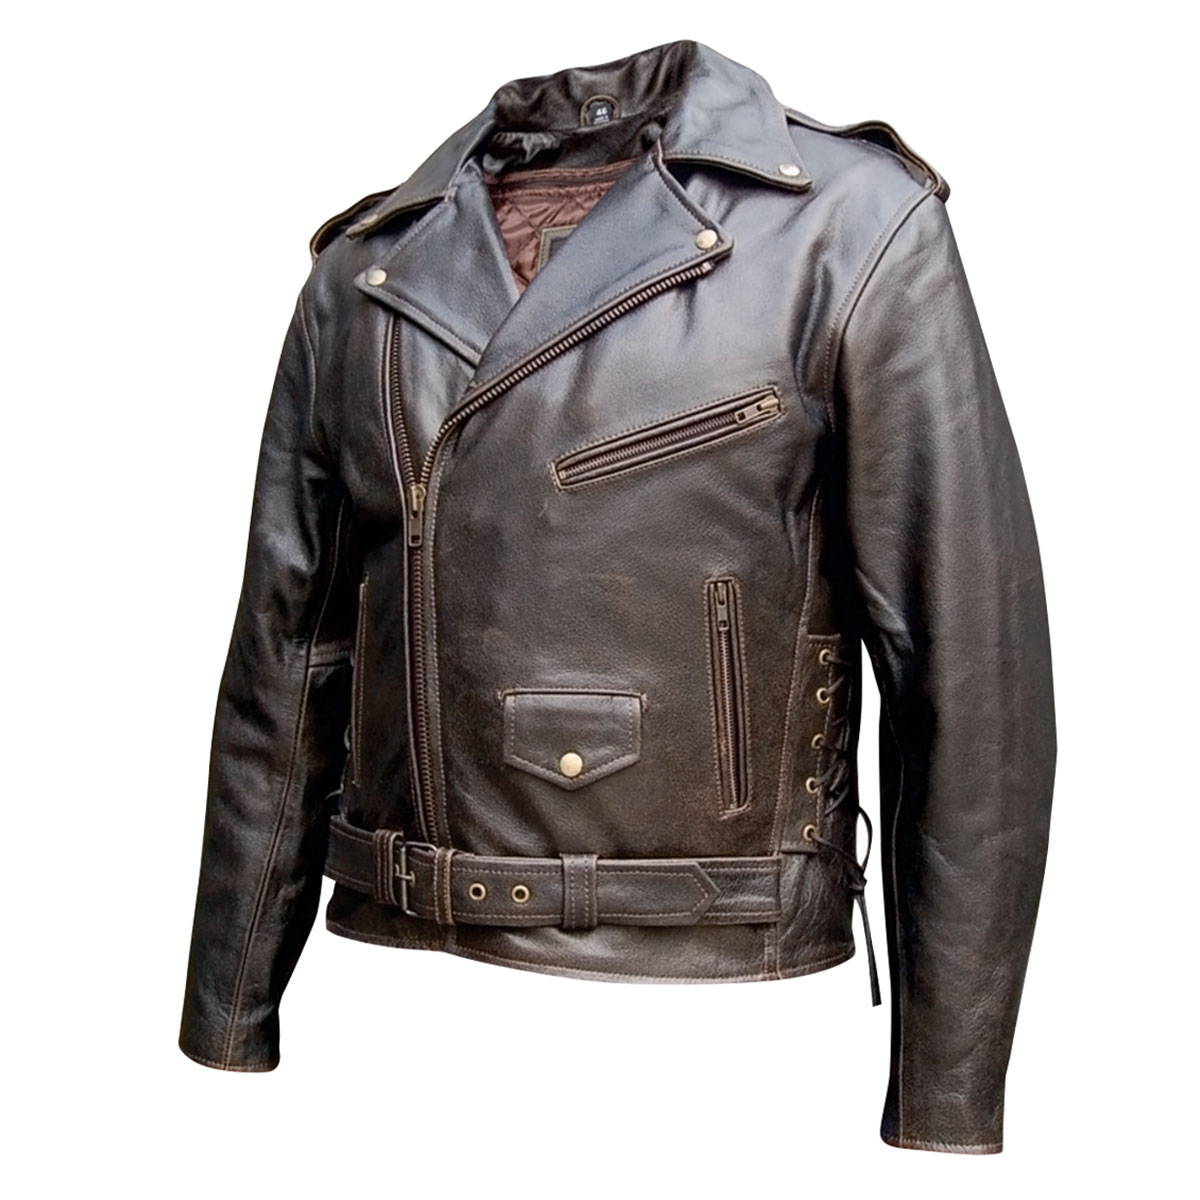 Allstate Leather Inc. Men's Retro Brown Motorcycle Jacket